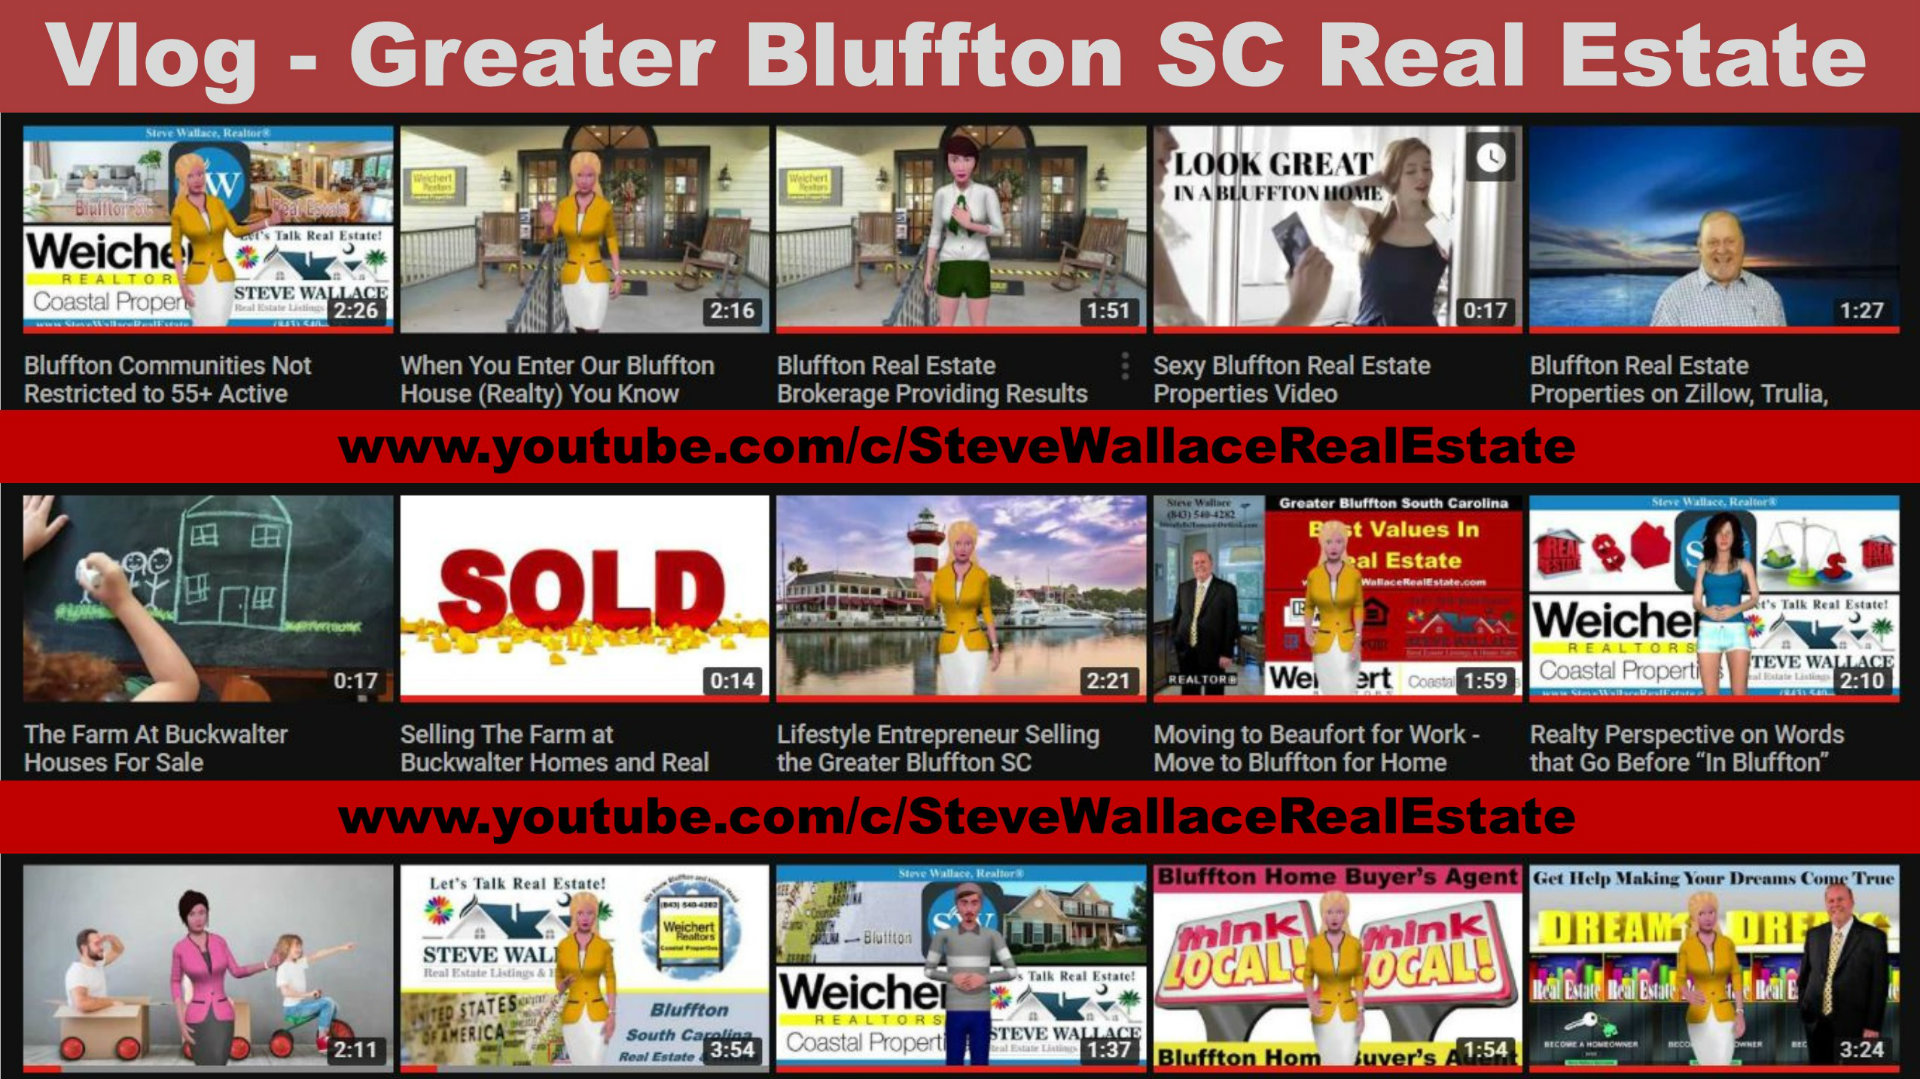 vlog, bluffton sc real estate, video log, blog